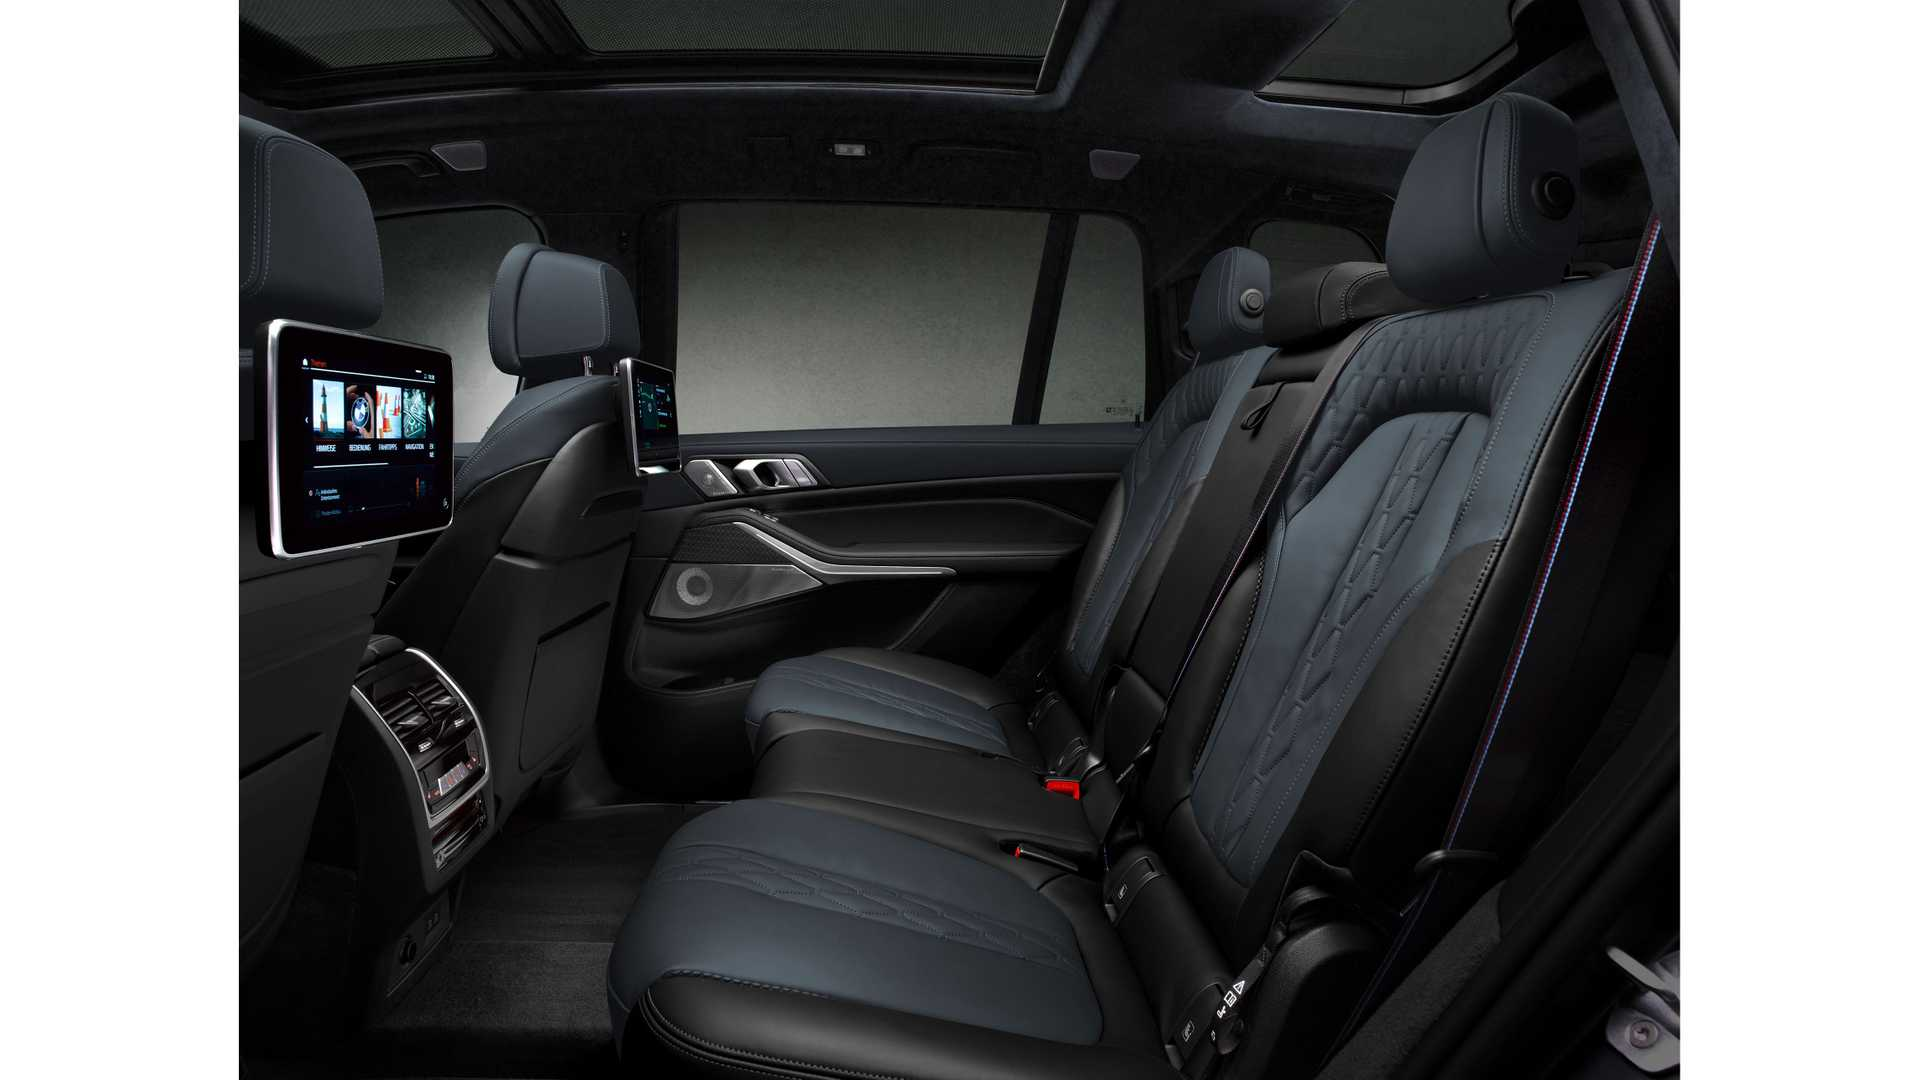 2021-bmw-x7-dark-shadow-edition-rear-seats.jpg